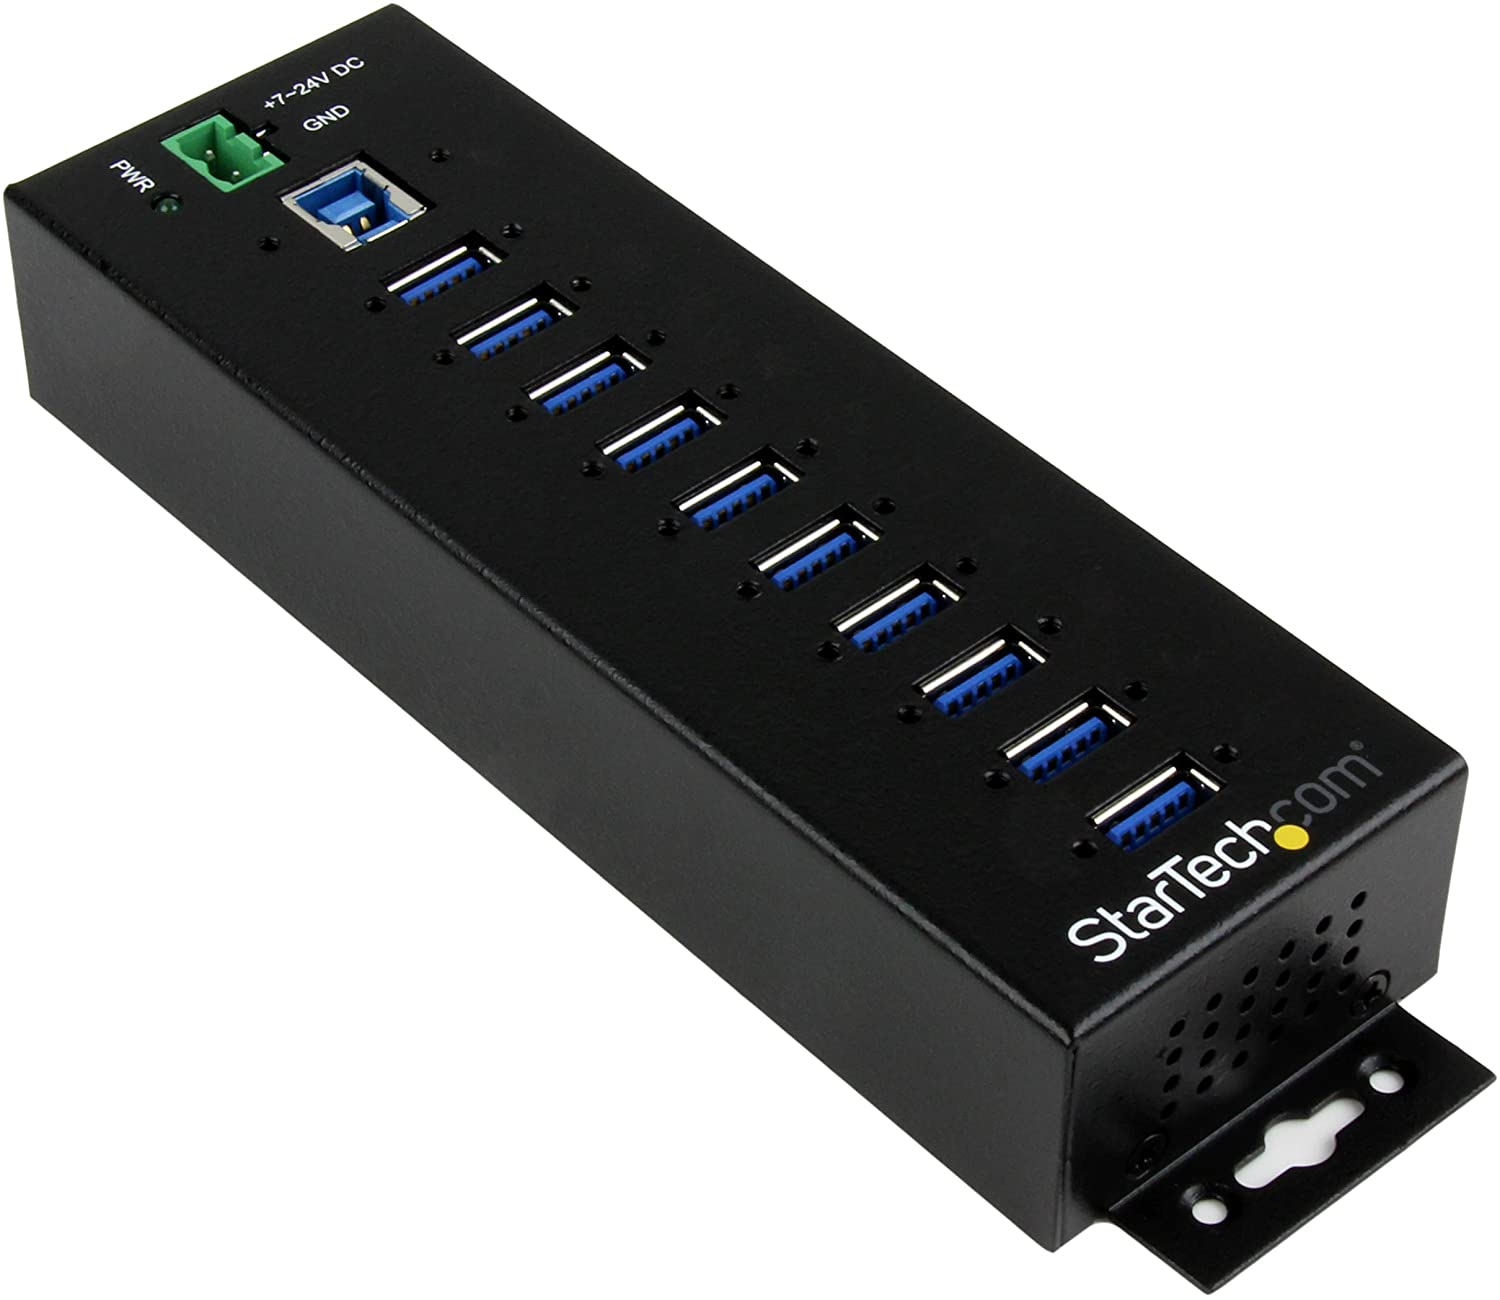 10 Port USB Hub w- Power Adapter - Metal Industrial USB 3.0 Data Hub - Din Rail, Wall & Desk Mount USB 3.1 Gen 1 5Gbps Hub